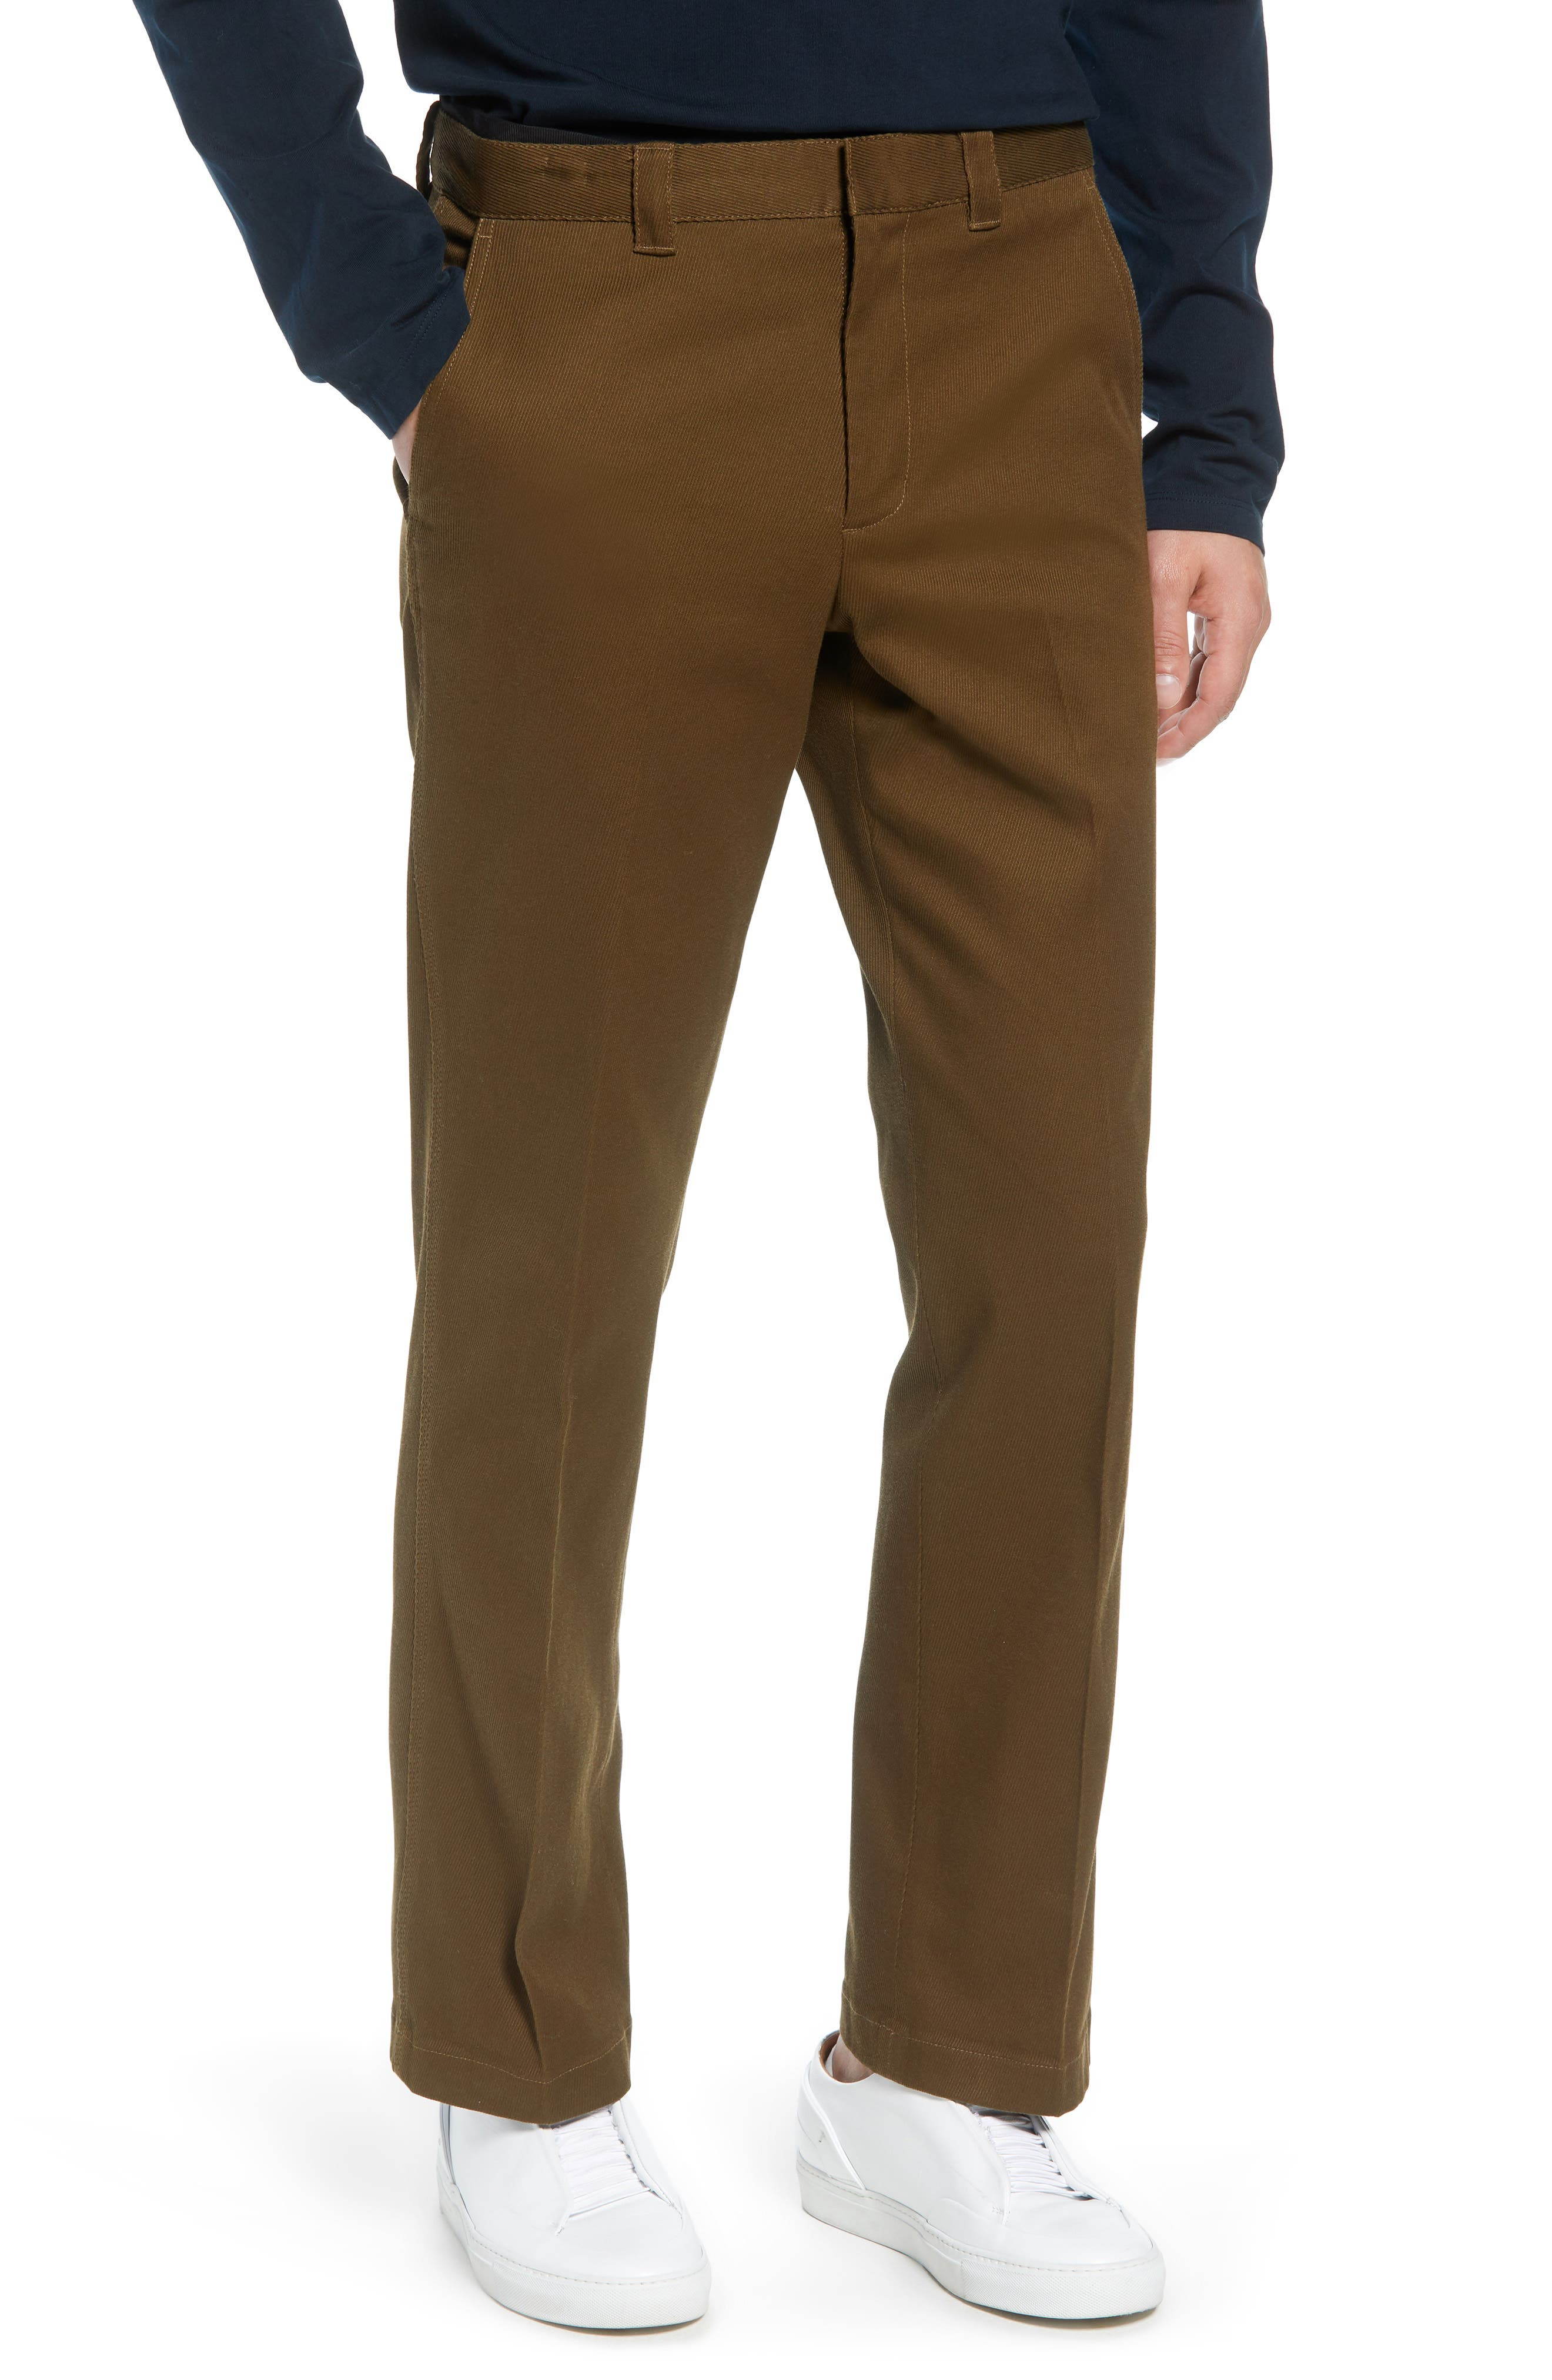 Stay Pressed Classic Fit Pants,                         Main,                         color, INFANTRY GREEN